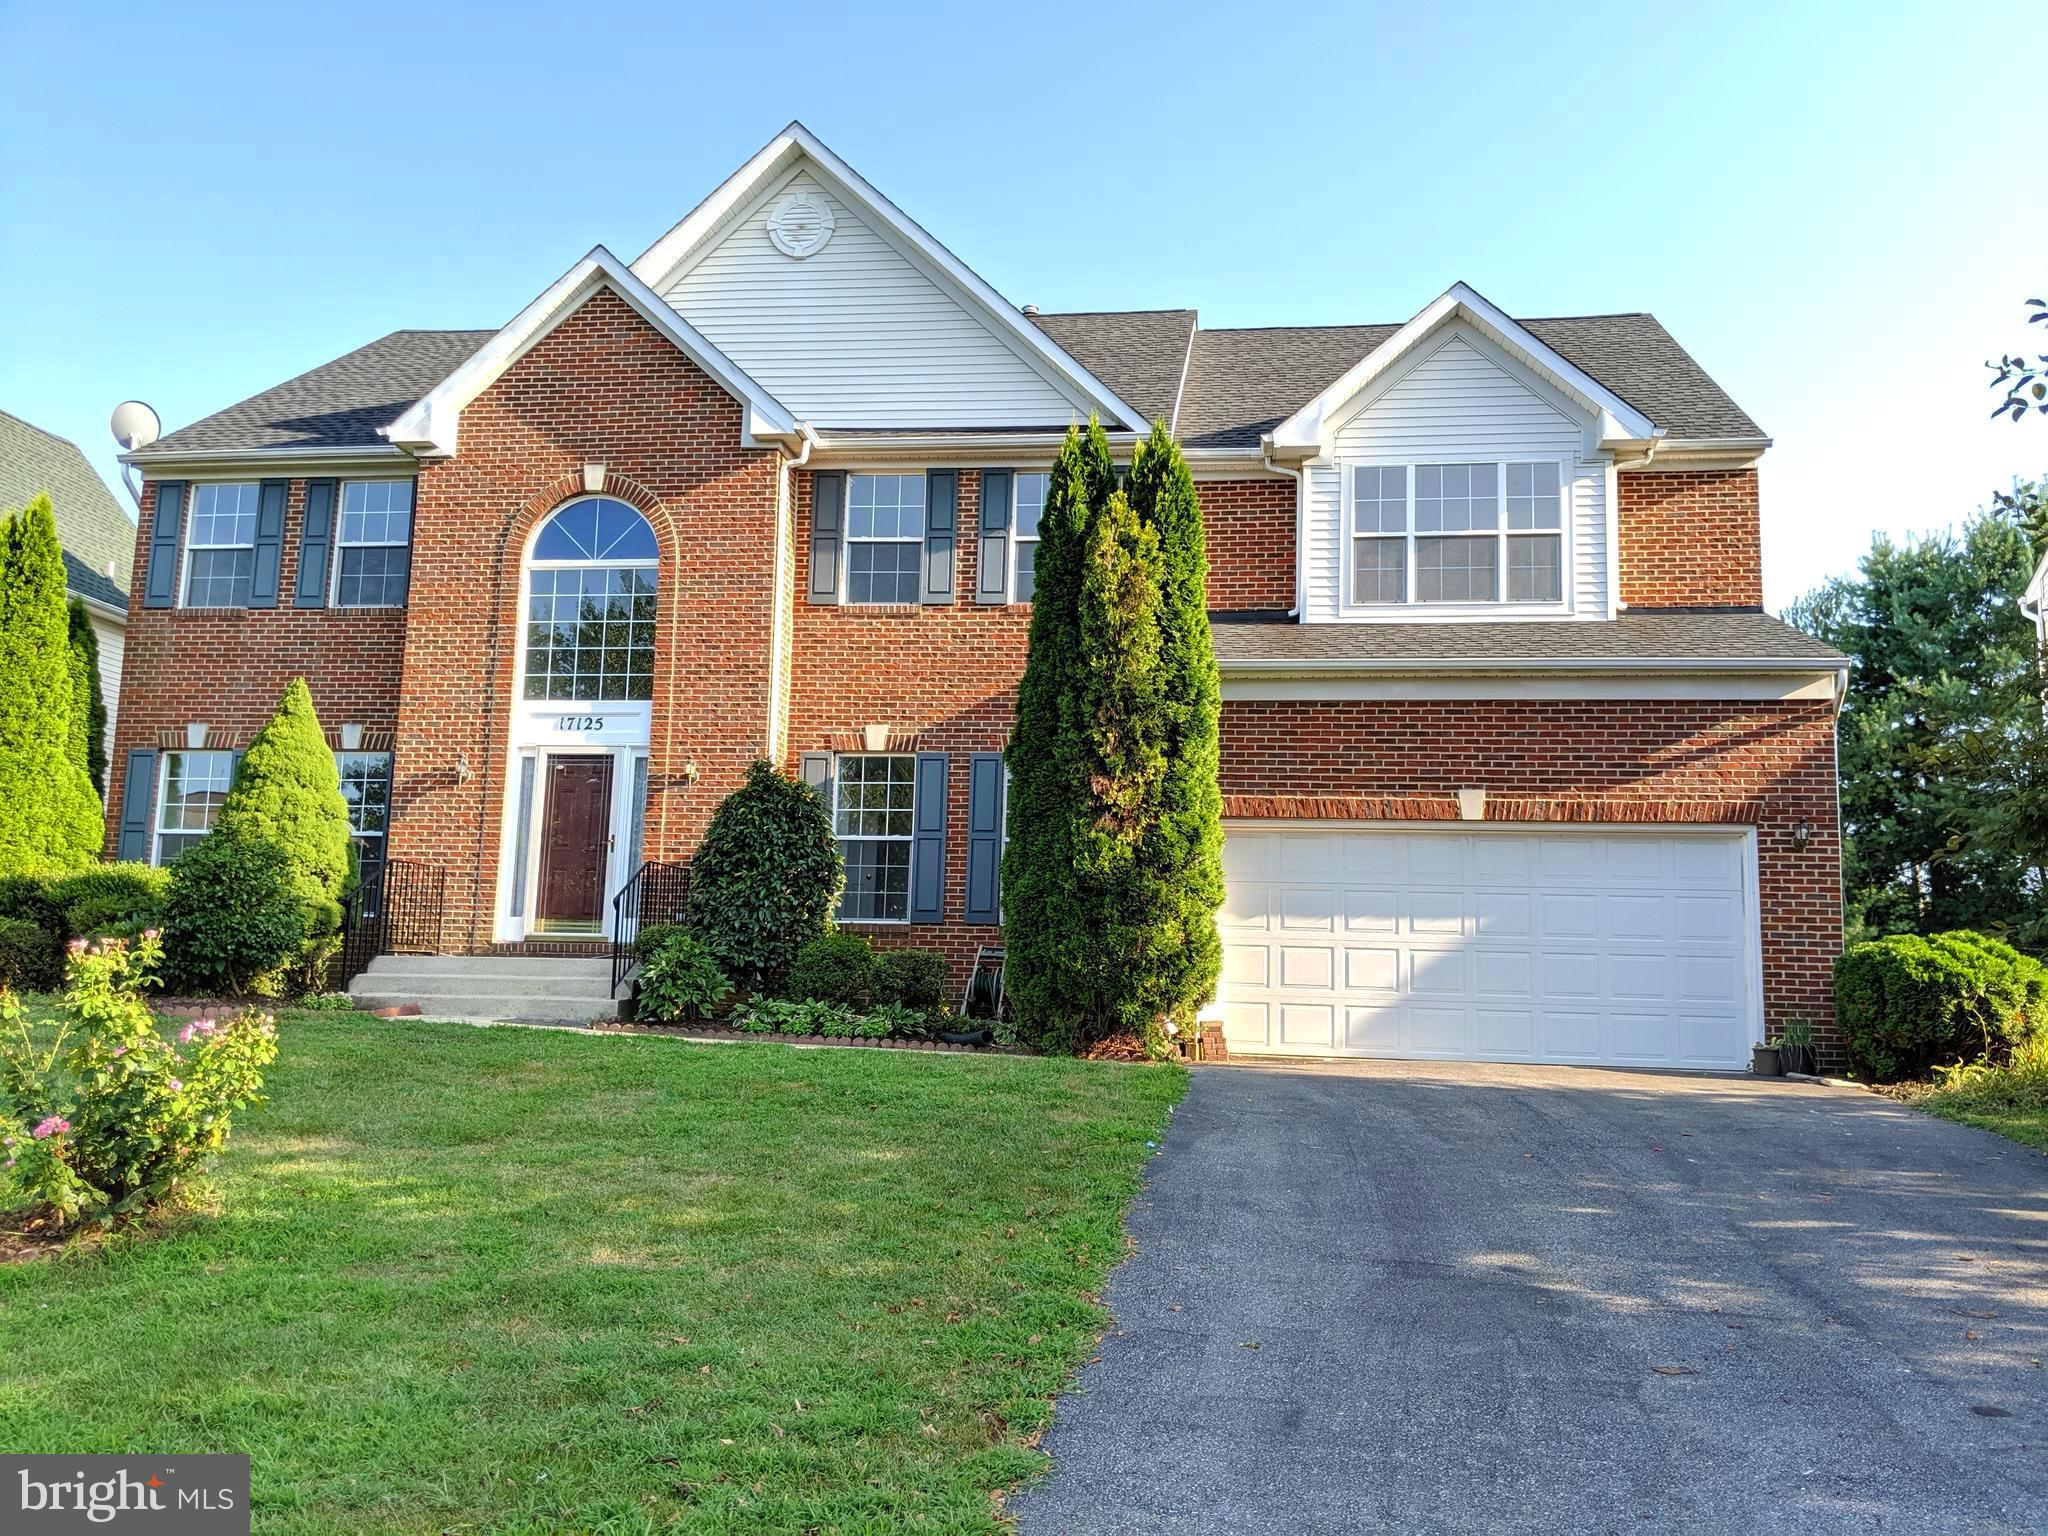 17125 RUSSET DRIVE, BOWIE, MD 20716